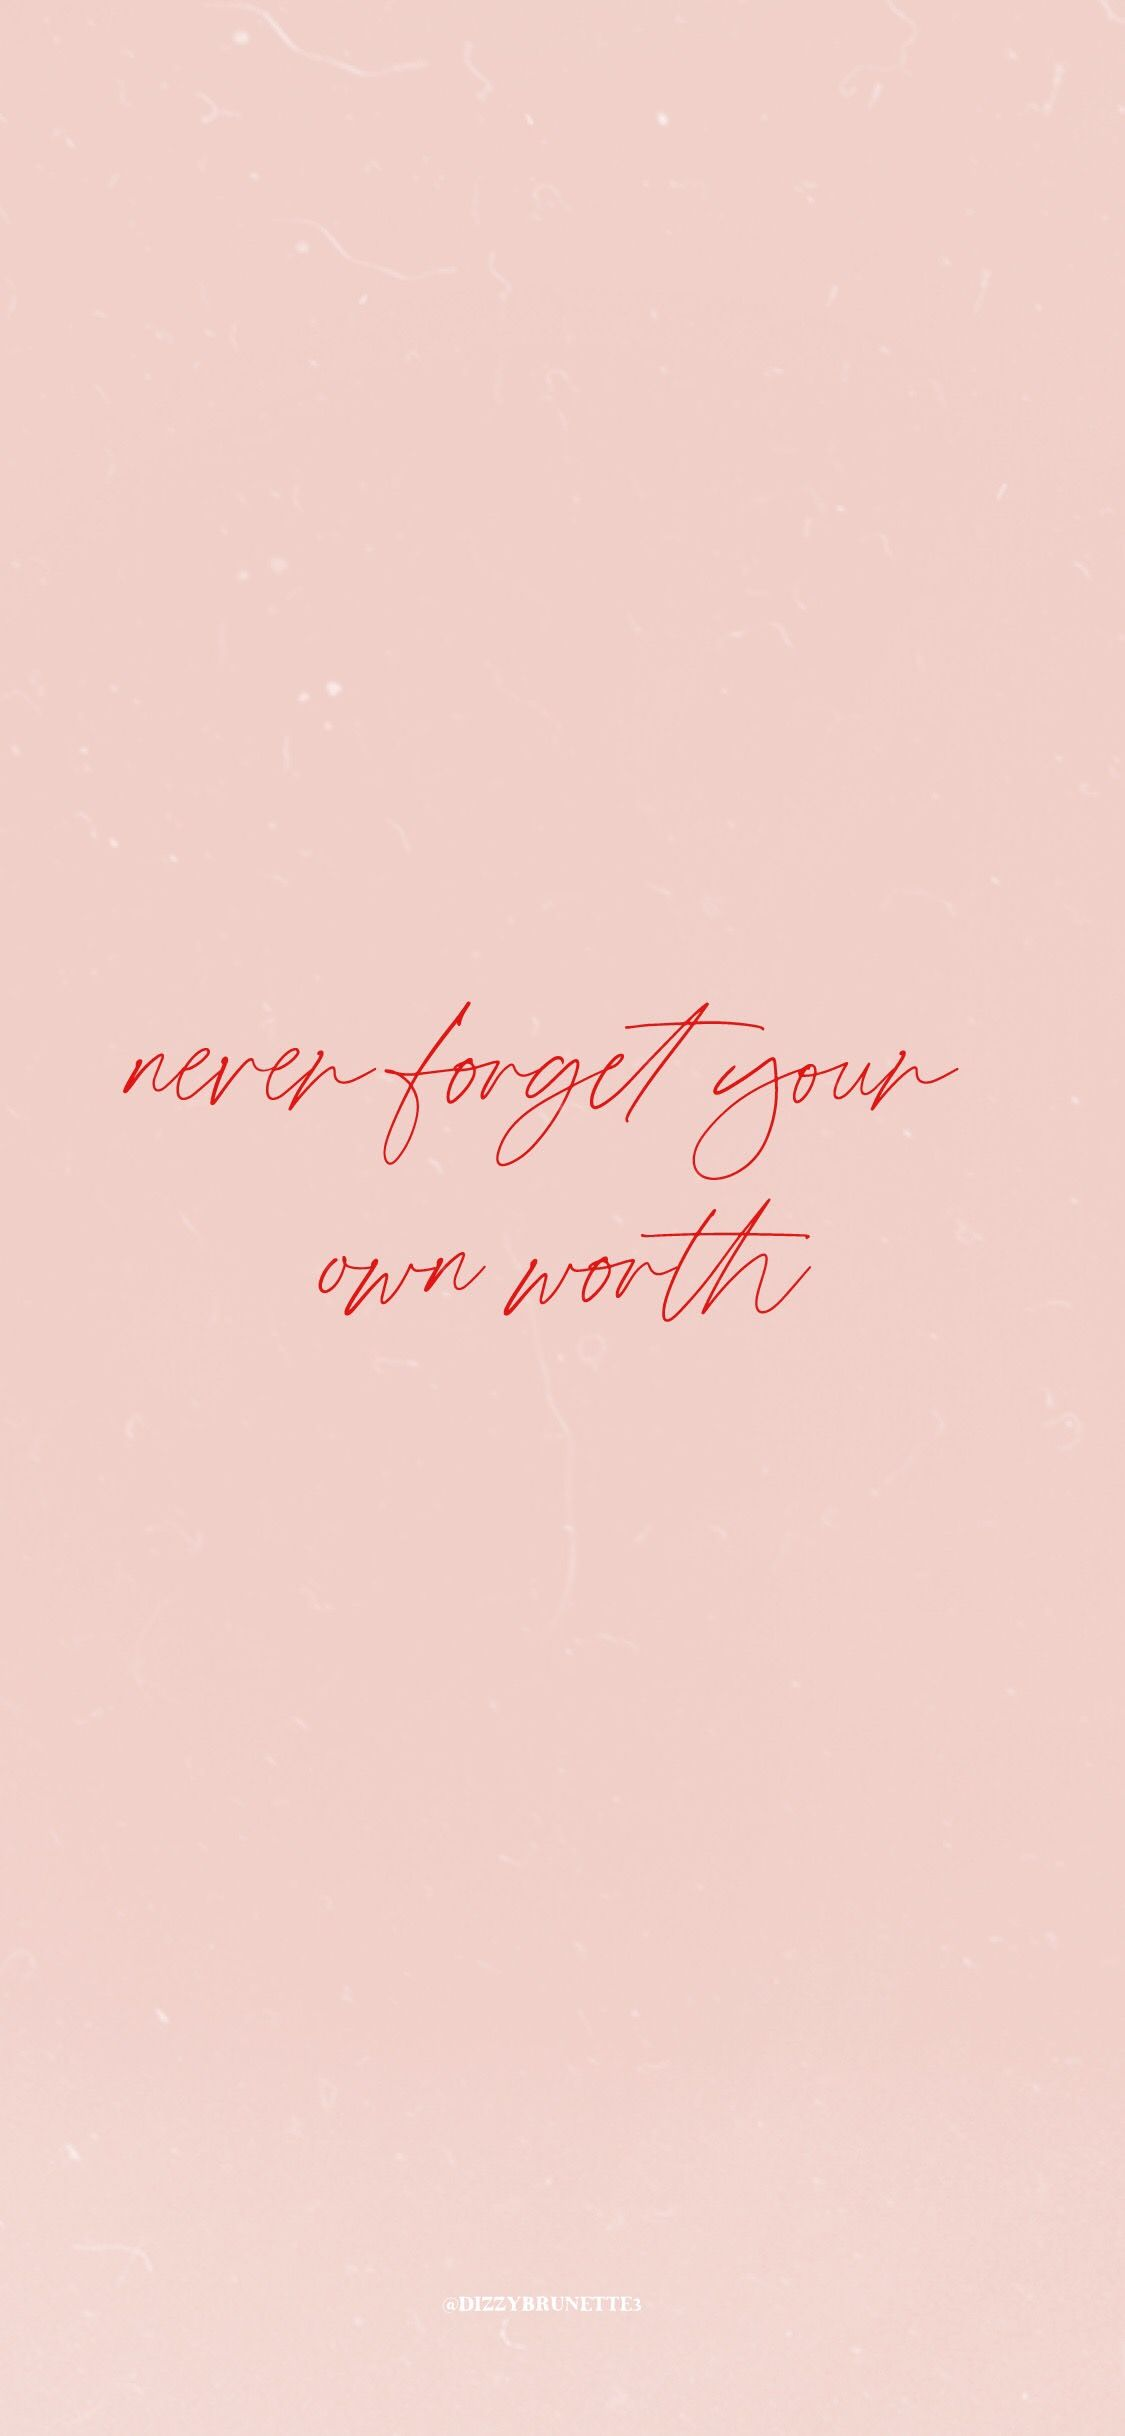 Pink Wallpaper Iphone Wallpaper Phone Wallpaper Free Pink Wallpaper Free Iphone Wallpaper Motivation Phone Backgrounds Quotes Boss Quotes Beautiful Quotes